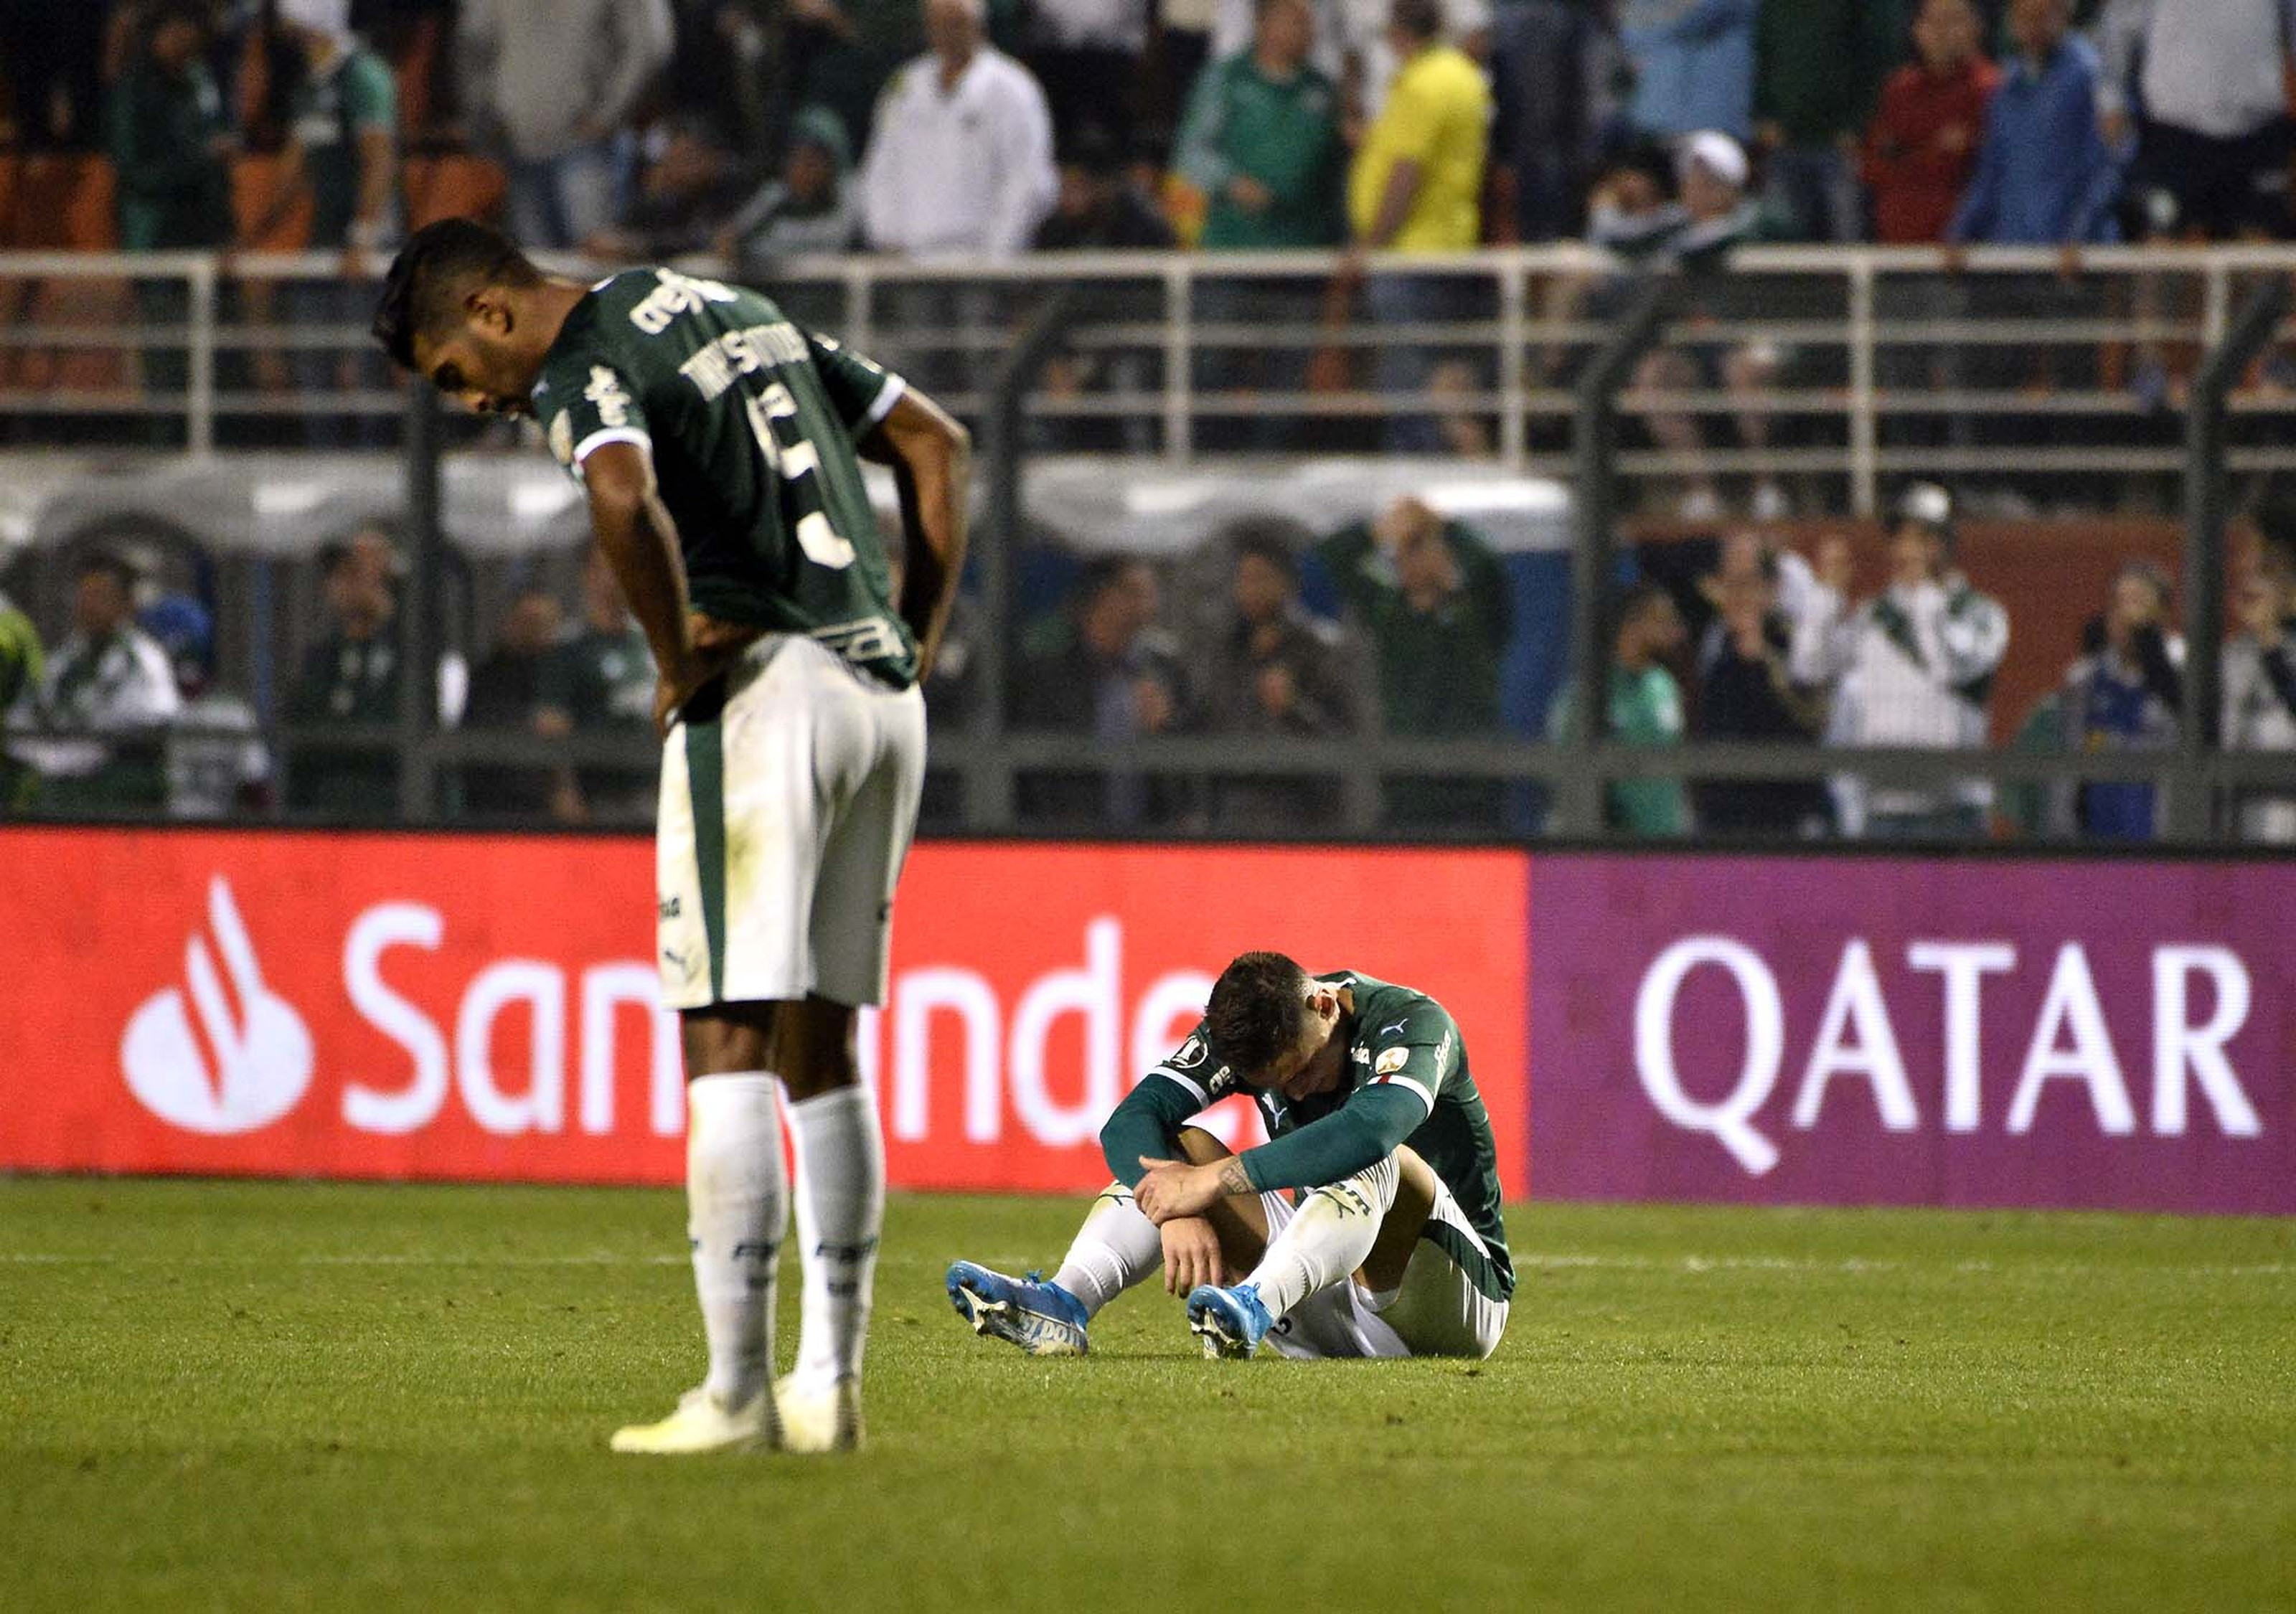 Photo of Palmeiras optou por ser regular